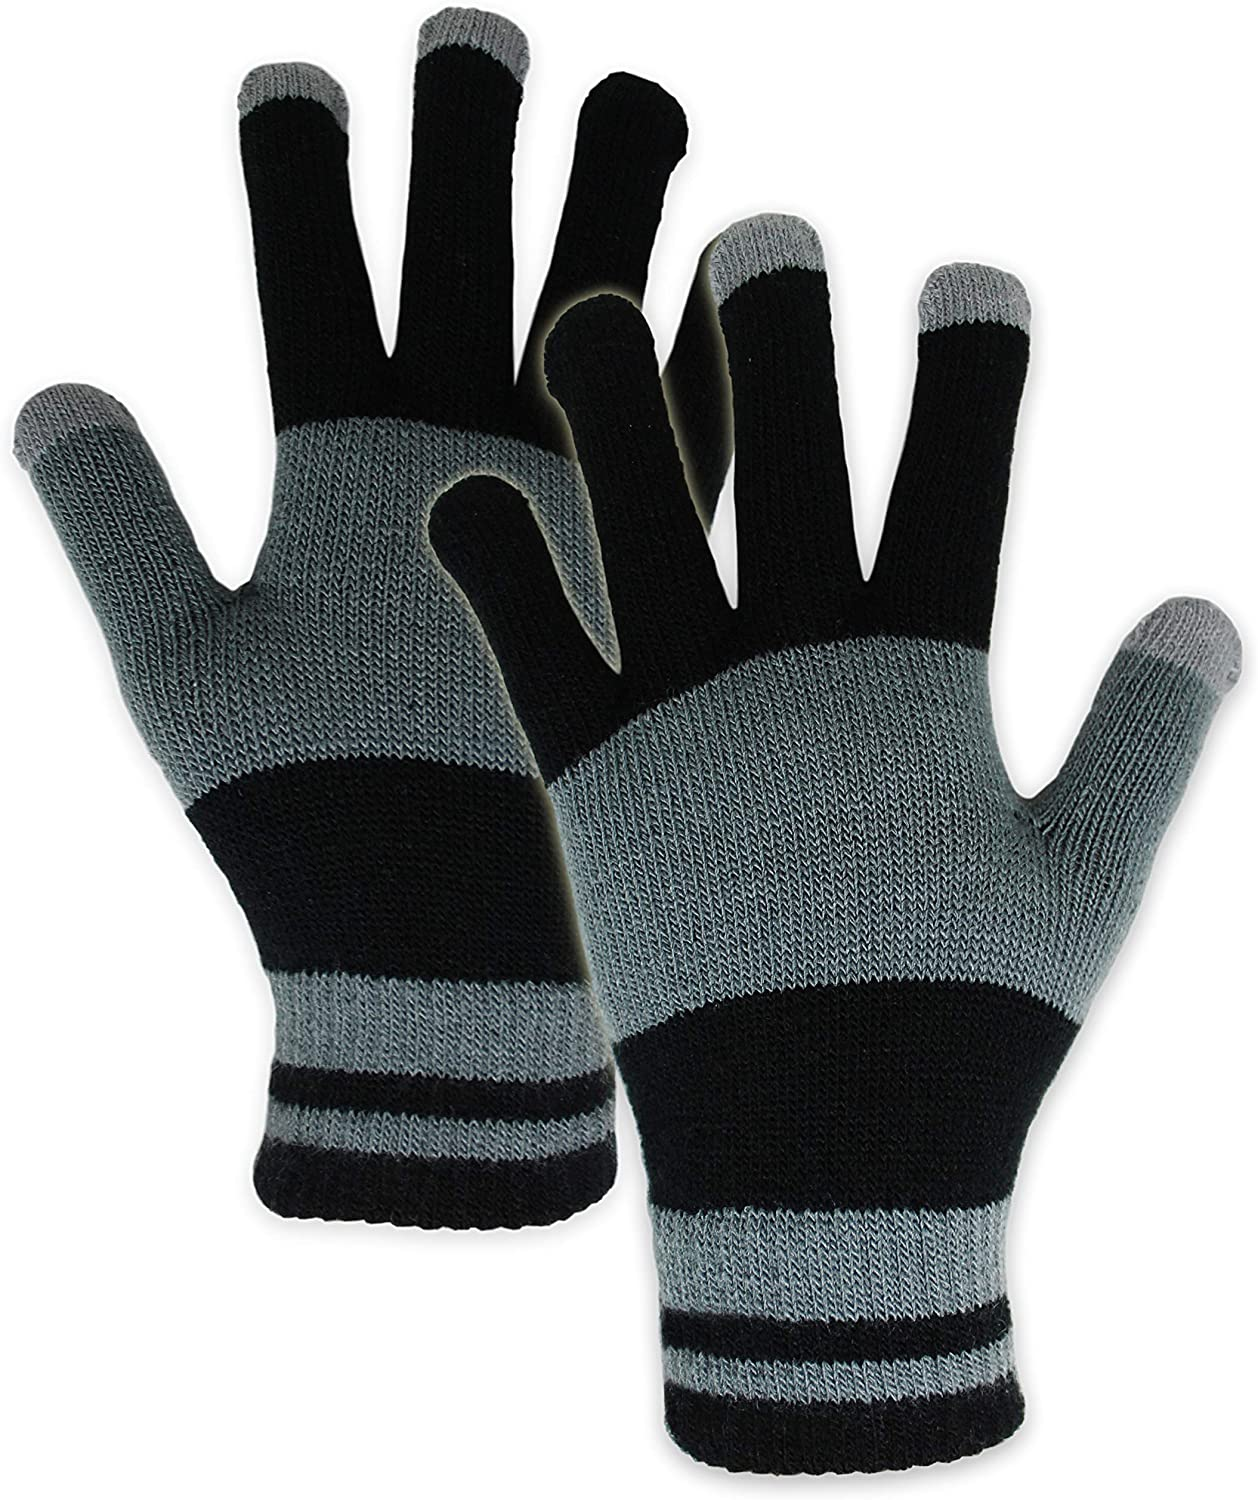 Touch Screen Winter Knit Gloves - Lightweight & Warm Thermal Magic Tech Gloves for Texting, Running, Driving, Cycling